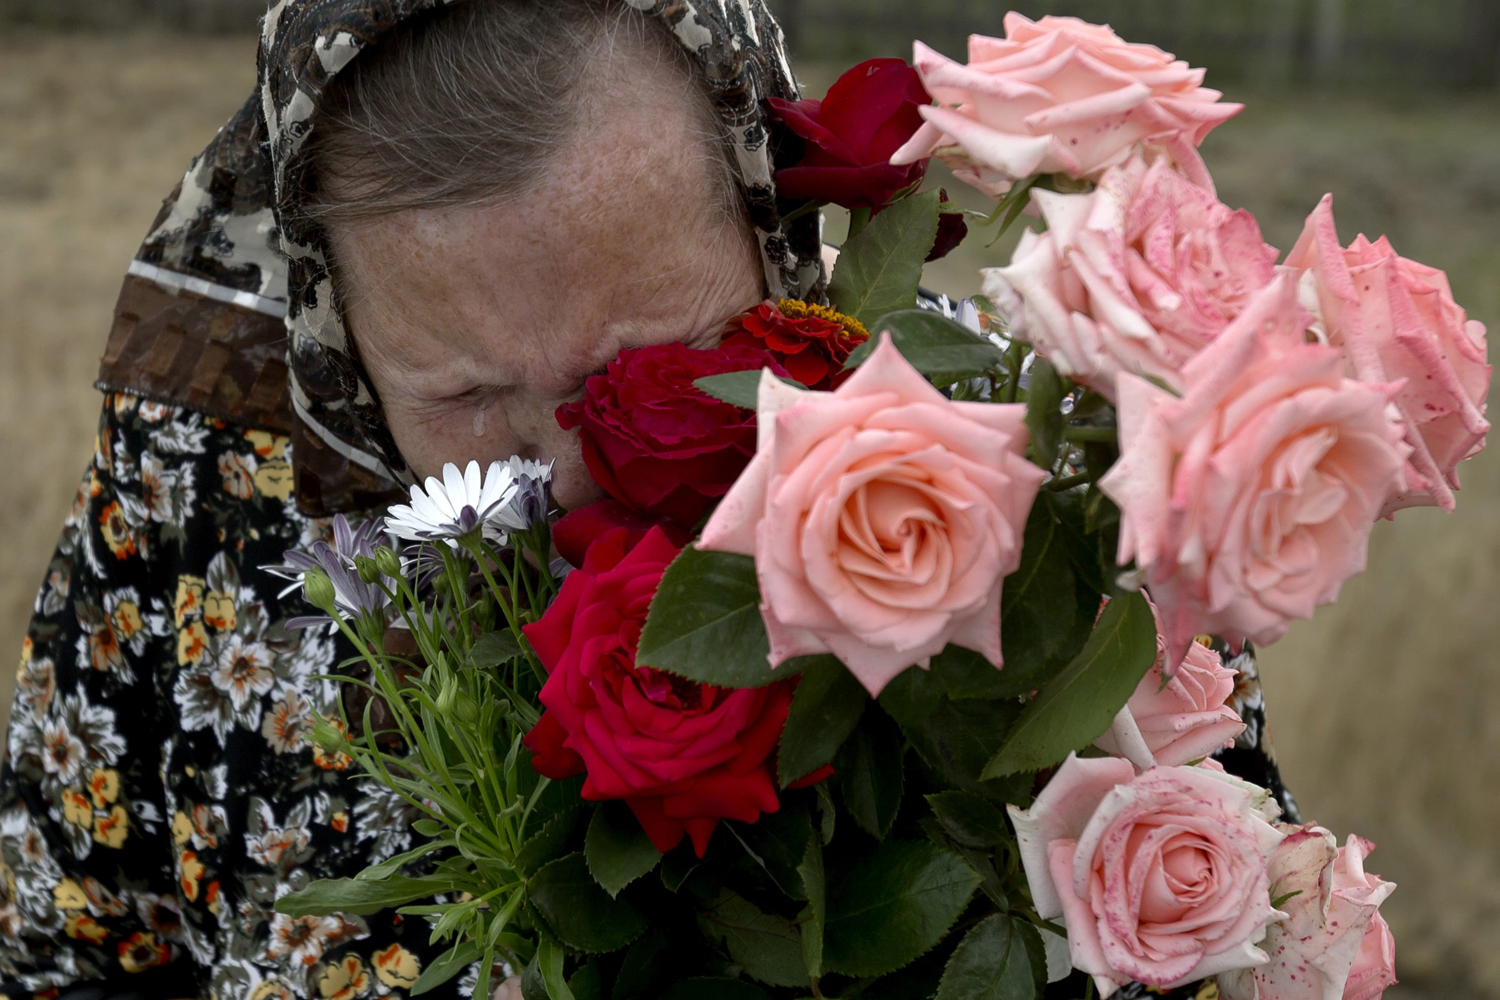 Jul. 22, 2014. A woman cries during a religious service held by villagers in memory of the victims at the crash site of Malaysia Airlines Flight 17 near the village of Hrabove, eastern Ukraine.